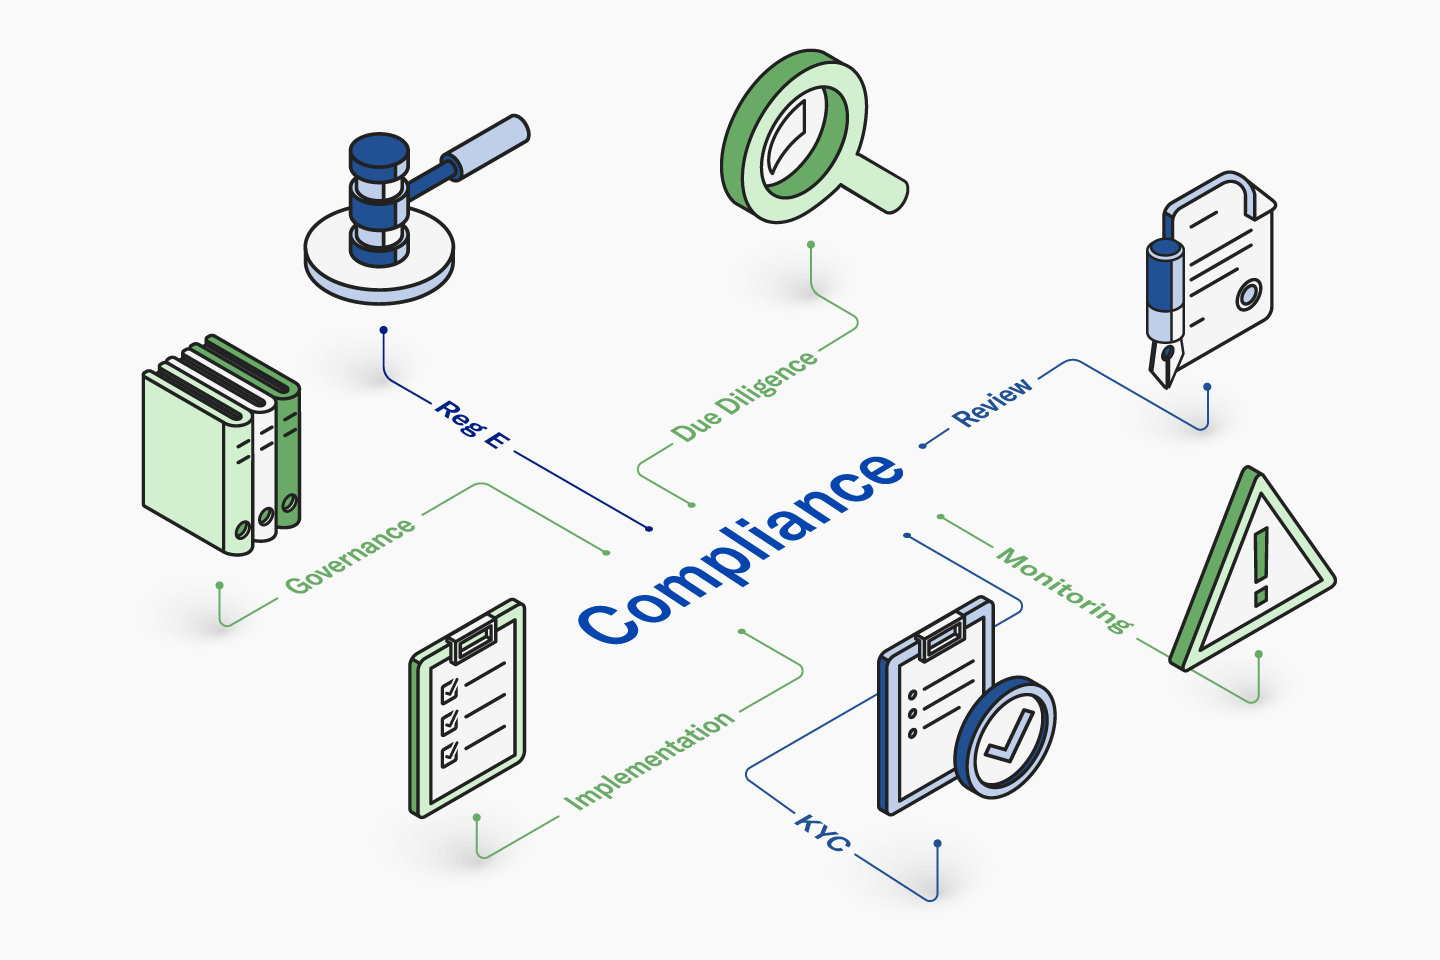 Infographic showing various aspects of compliance navigation